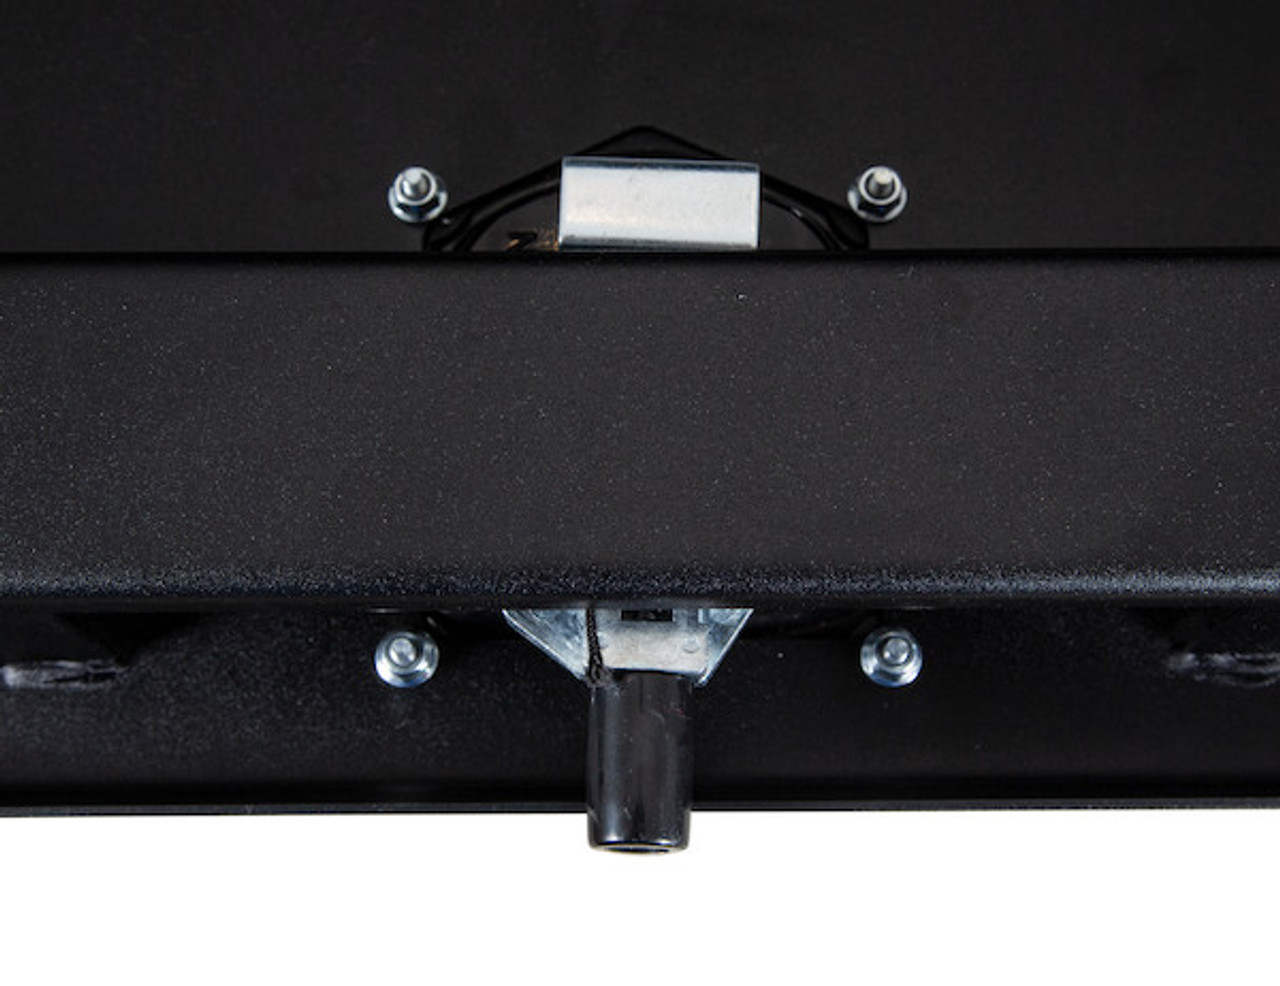 """1734500 BUYERS PRODUCTS TEXTURED MATTE BLACK STEEL UNDERBODY TRUCK TOOLBOX WITH 3-POINT LATCH 24""""Hx24""""Dx24""""W  Picture # 7"""